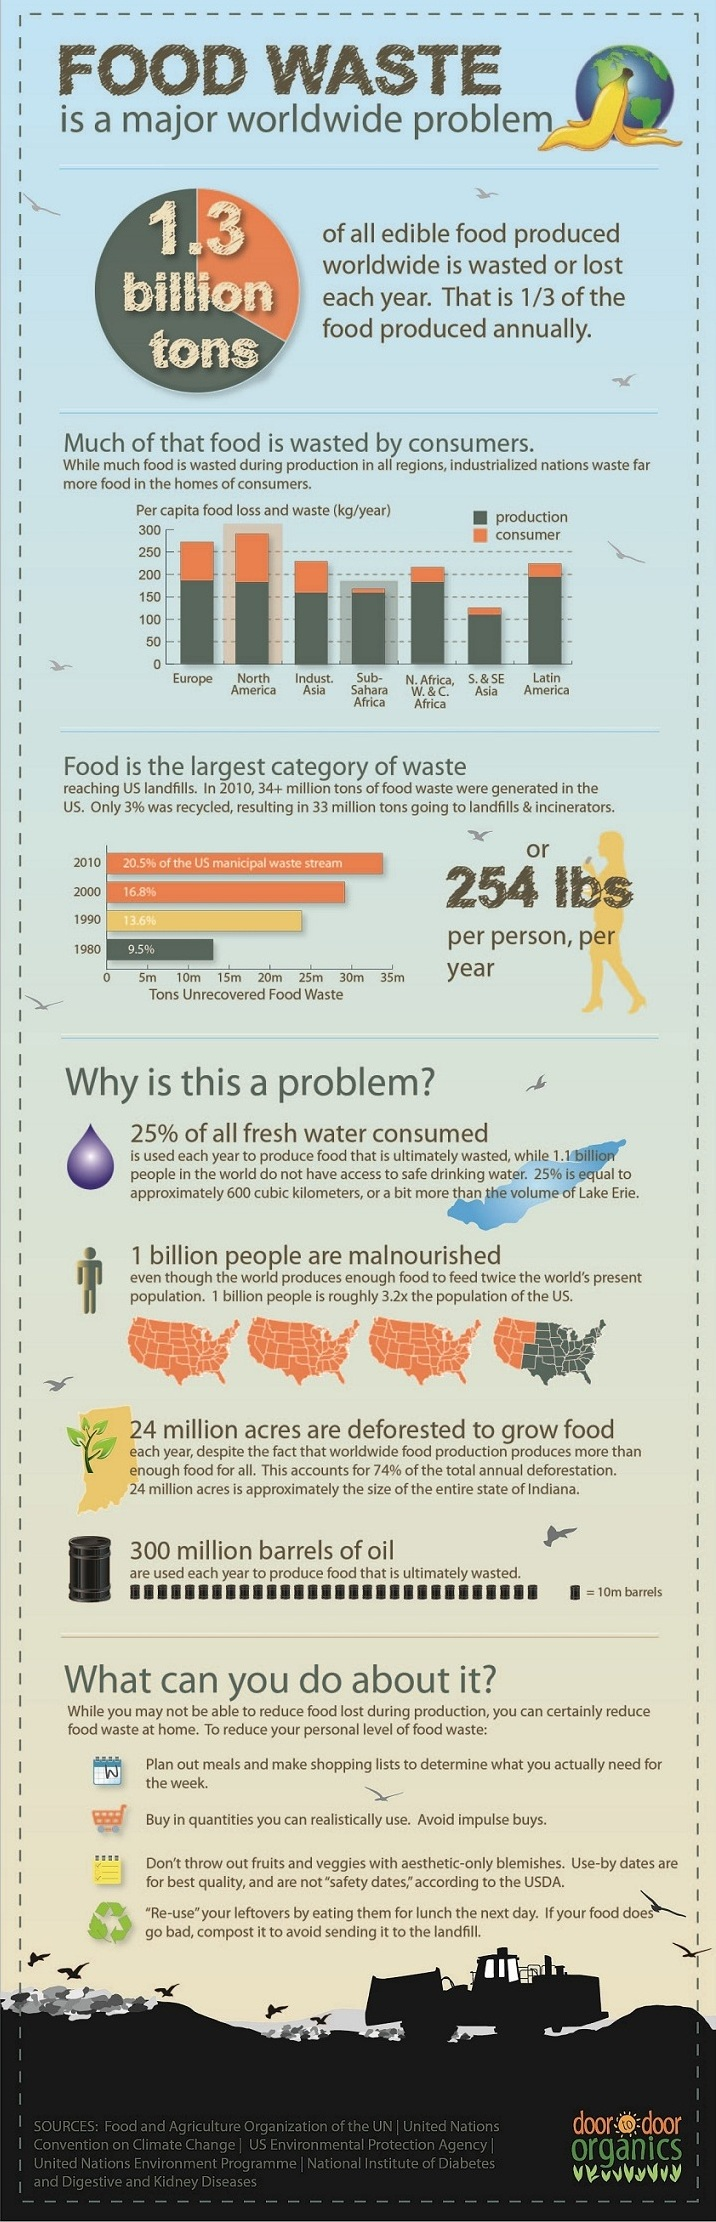 Food Waste Is a Major Worldwide Problem